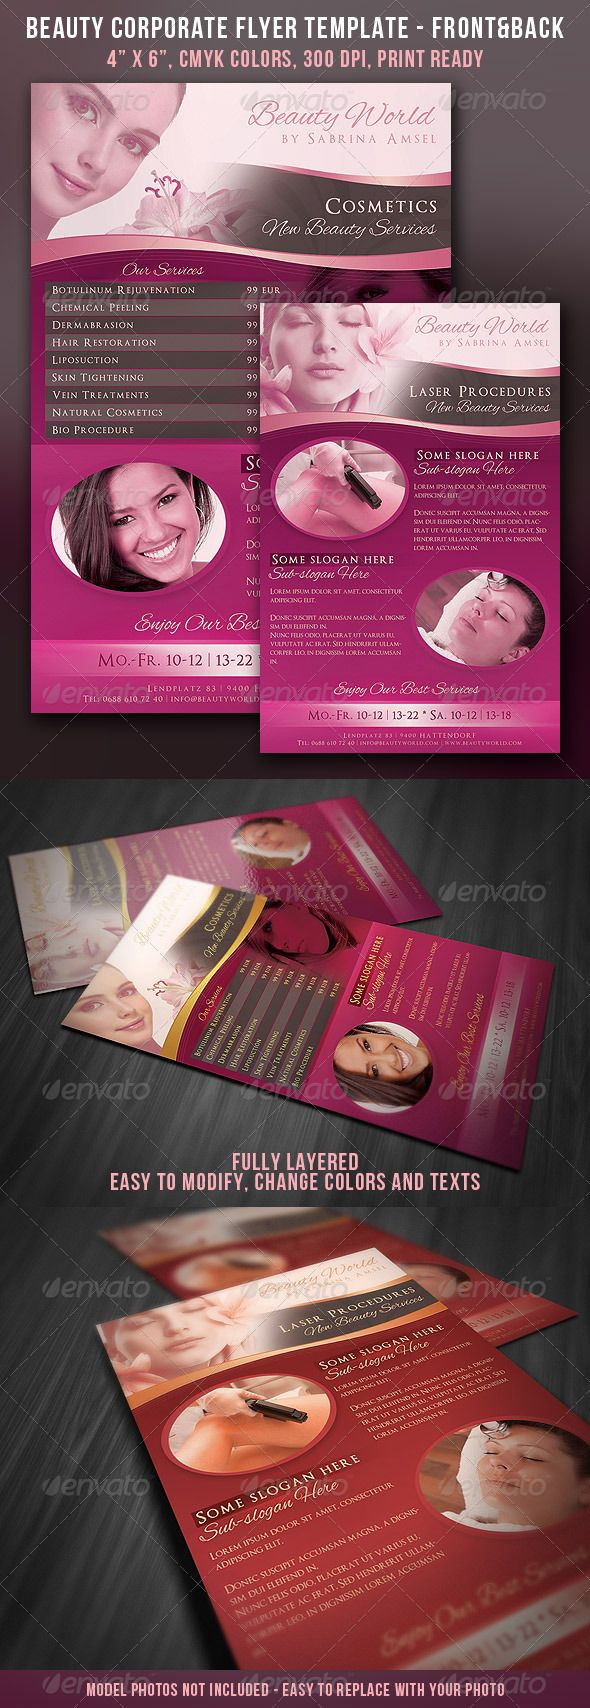 beauty corporate flyer front back cleanses fonts and beauty corporate flyer front back graphicriver item for